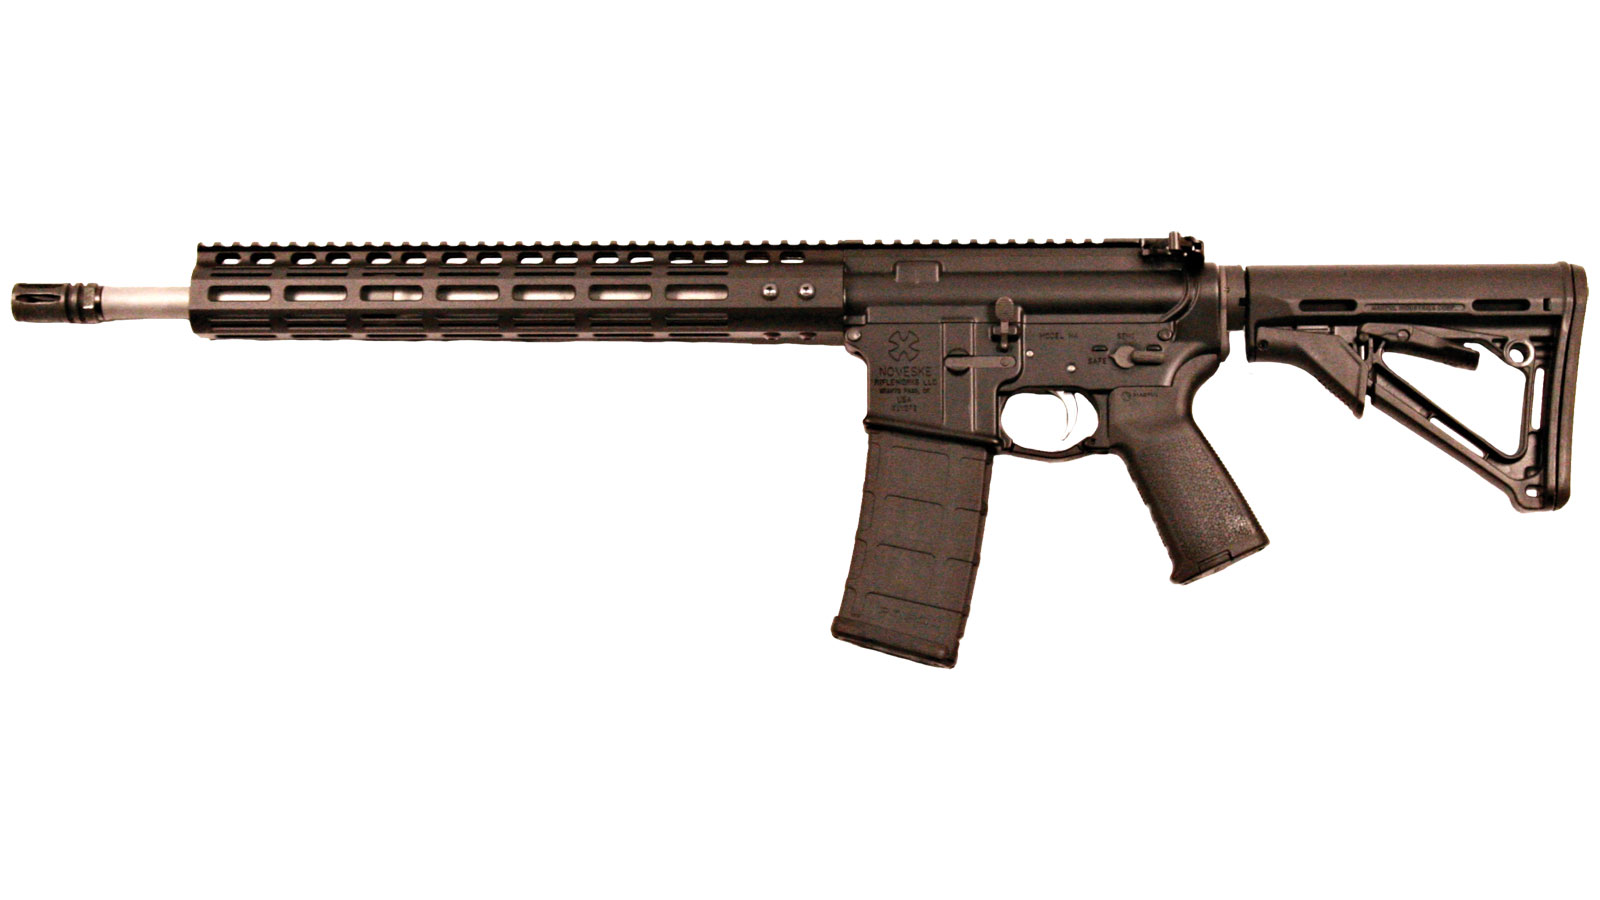 Noveske 02000402 Rogue Hunter Gen 1 M-Lok Semi-Automatic 223 Remington|5.56 NATO 16 30+1 Magpul CTR Black Stk Black Hardcoat Anodized|Stainless Steel in.